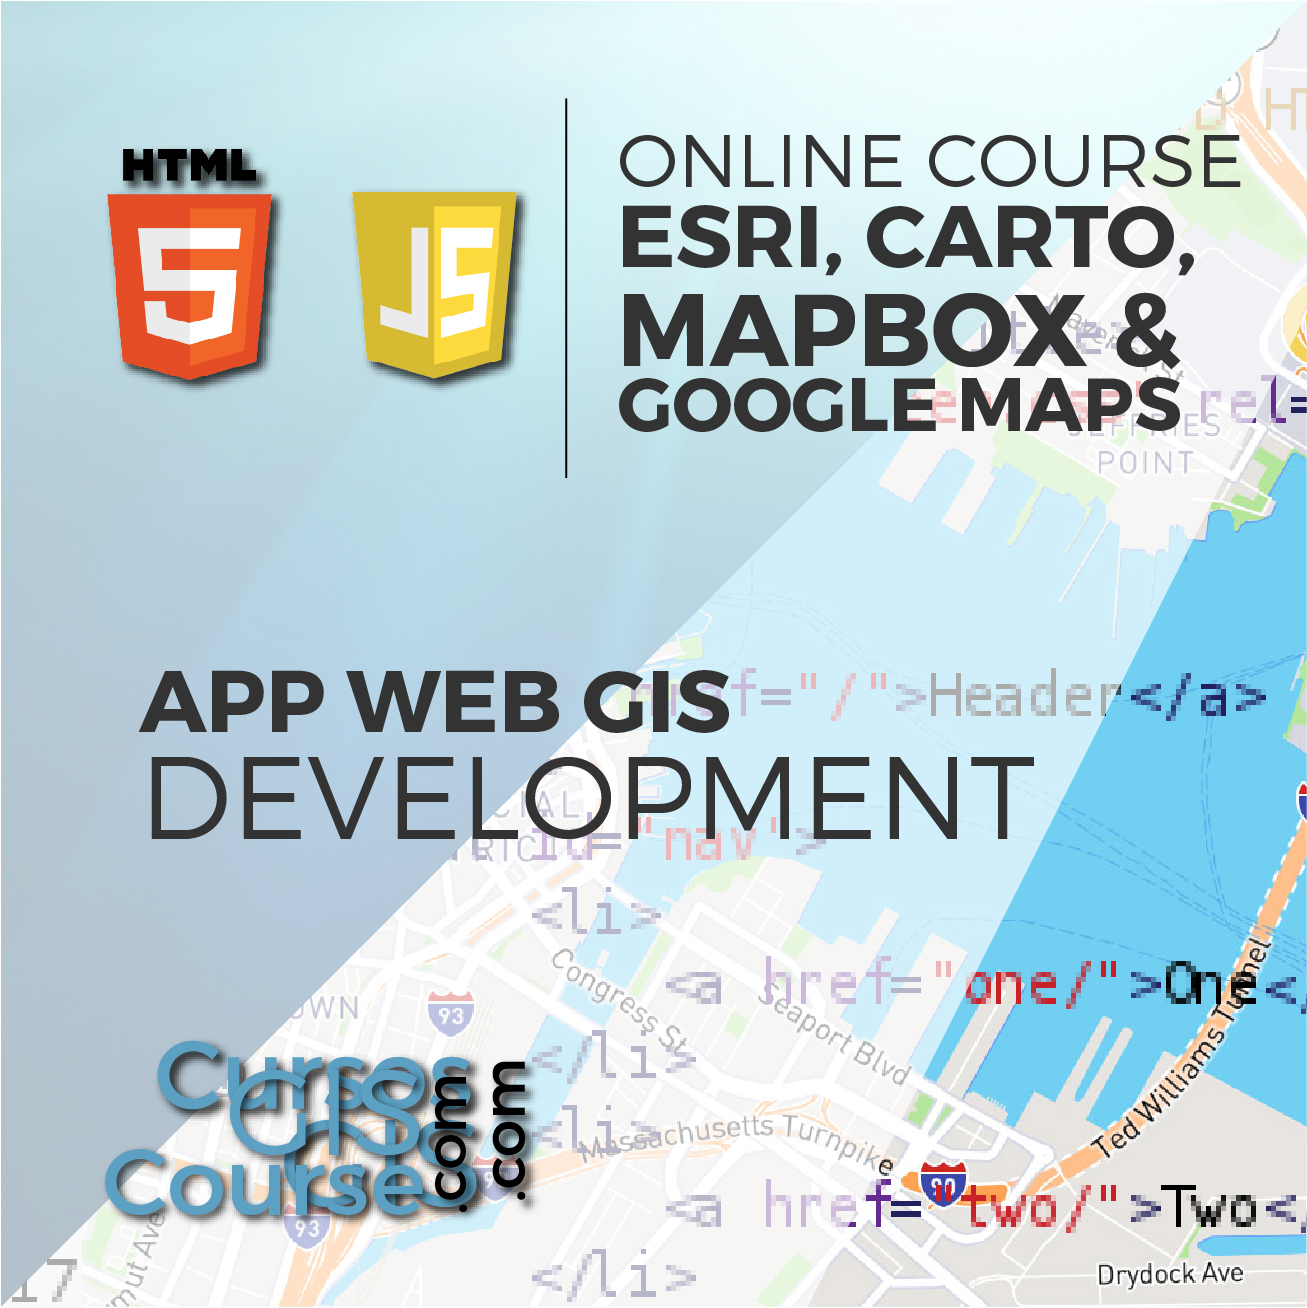 Development Of Web Based Gis Applications Using Esri Products Carto